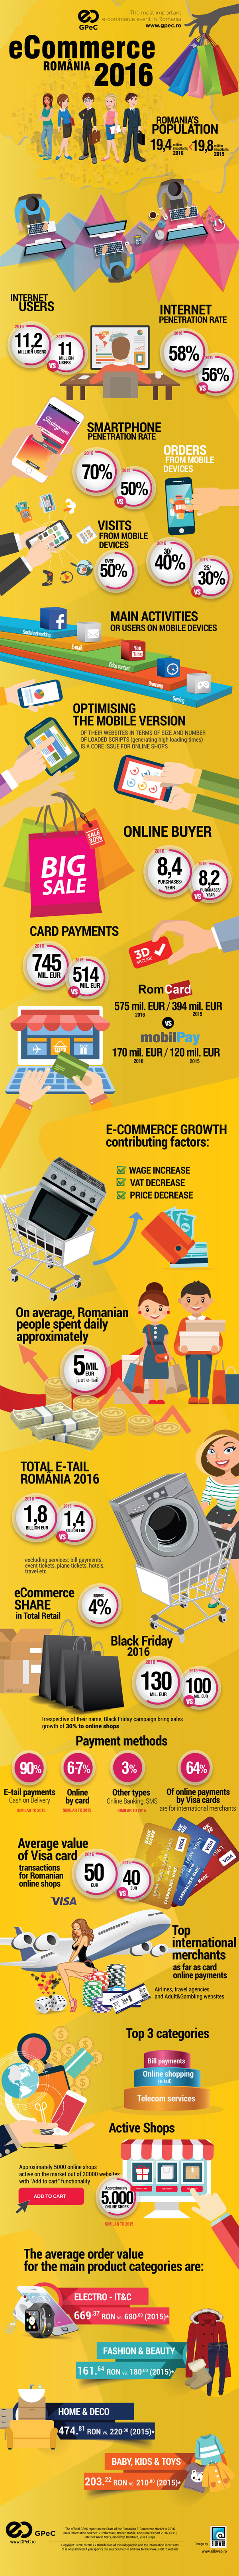 GPeC's infographic about ecommerce in Romania